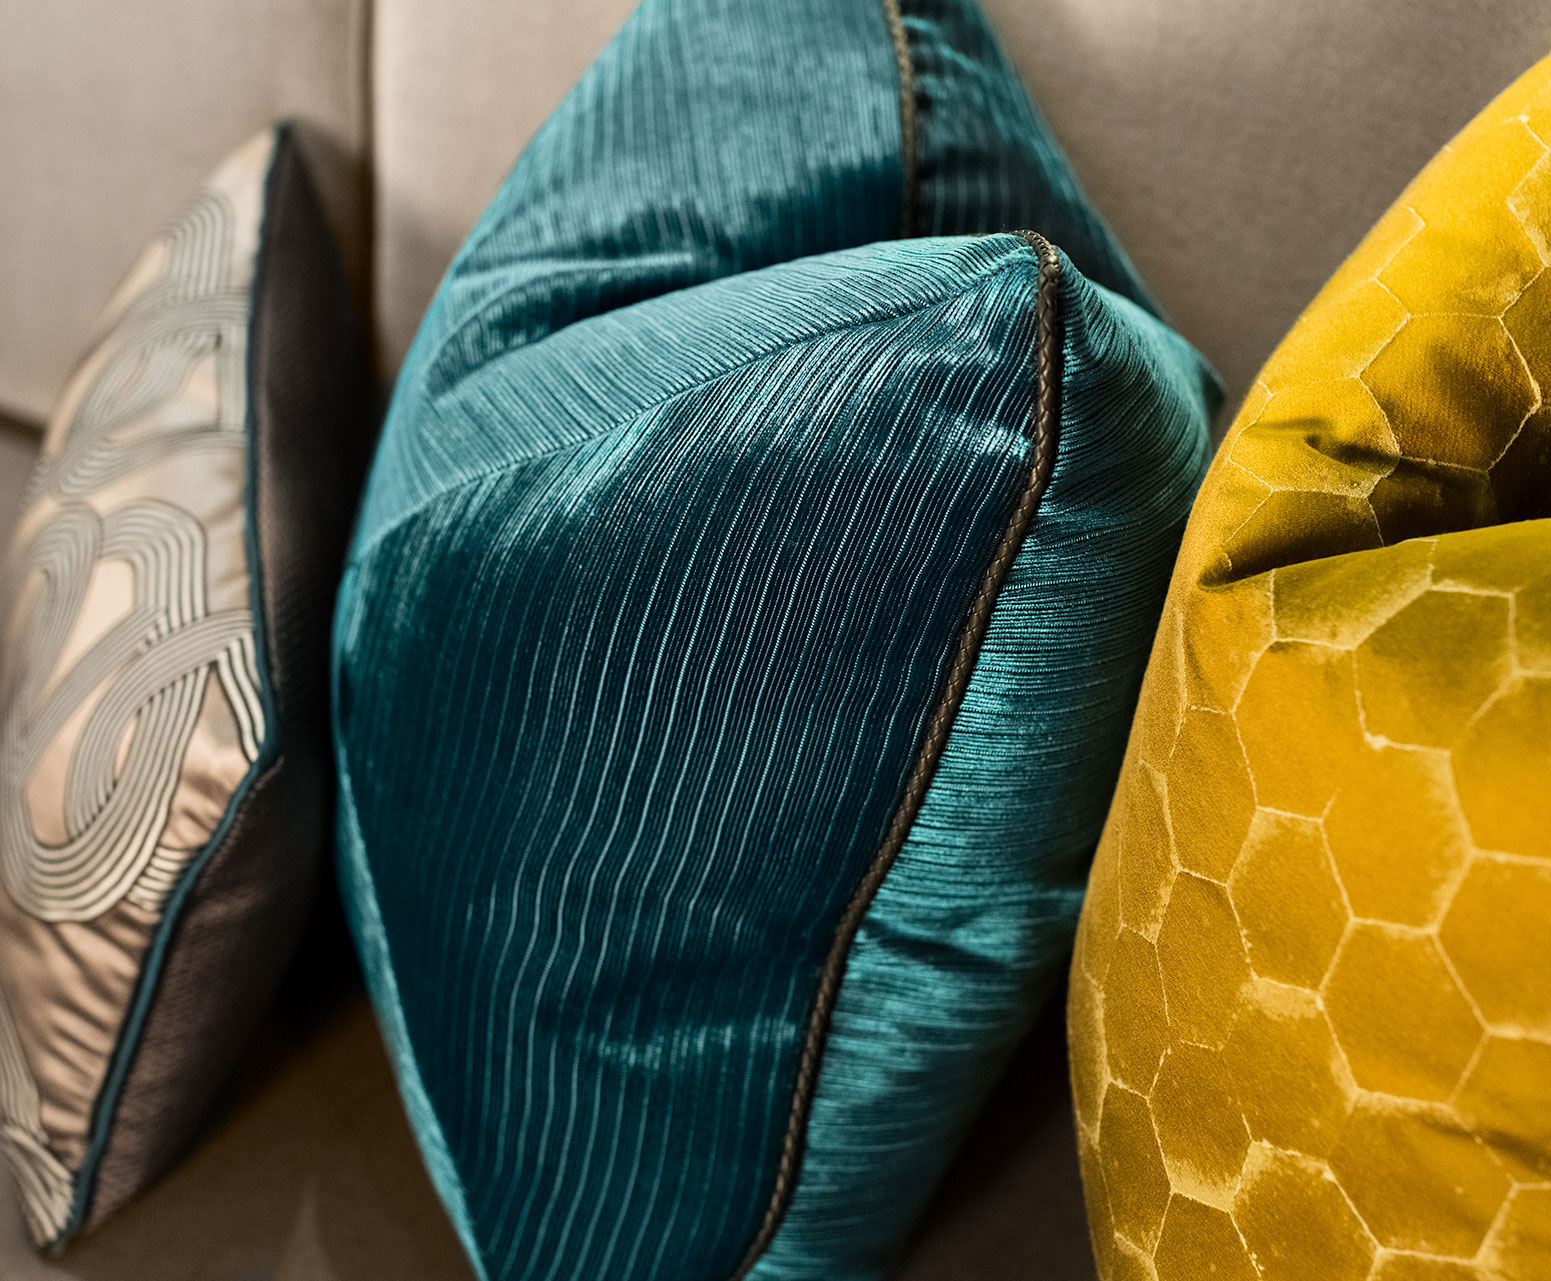 Gray, aqua and yellow luxurious pillows on a couch.